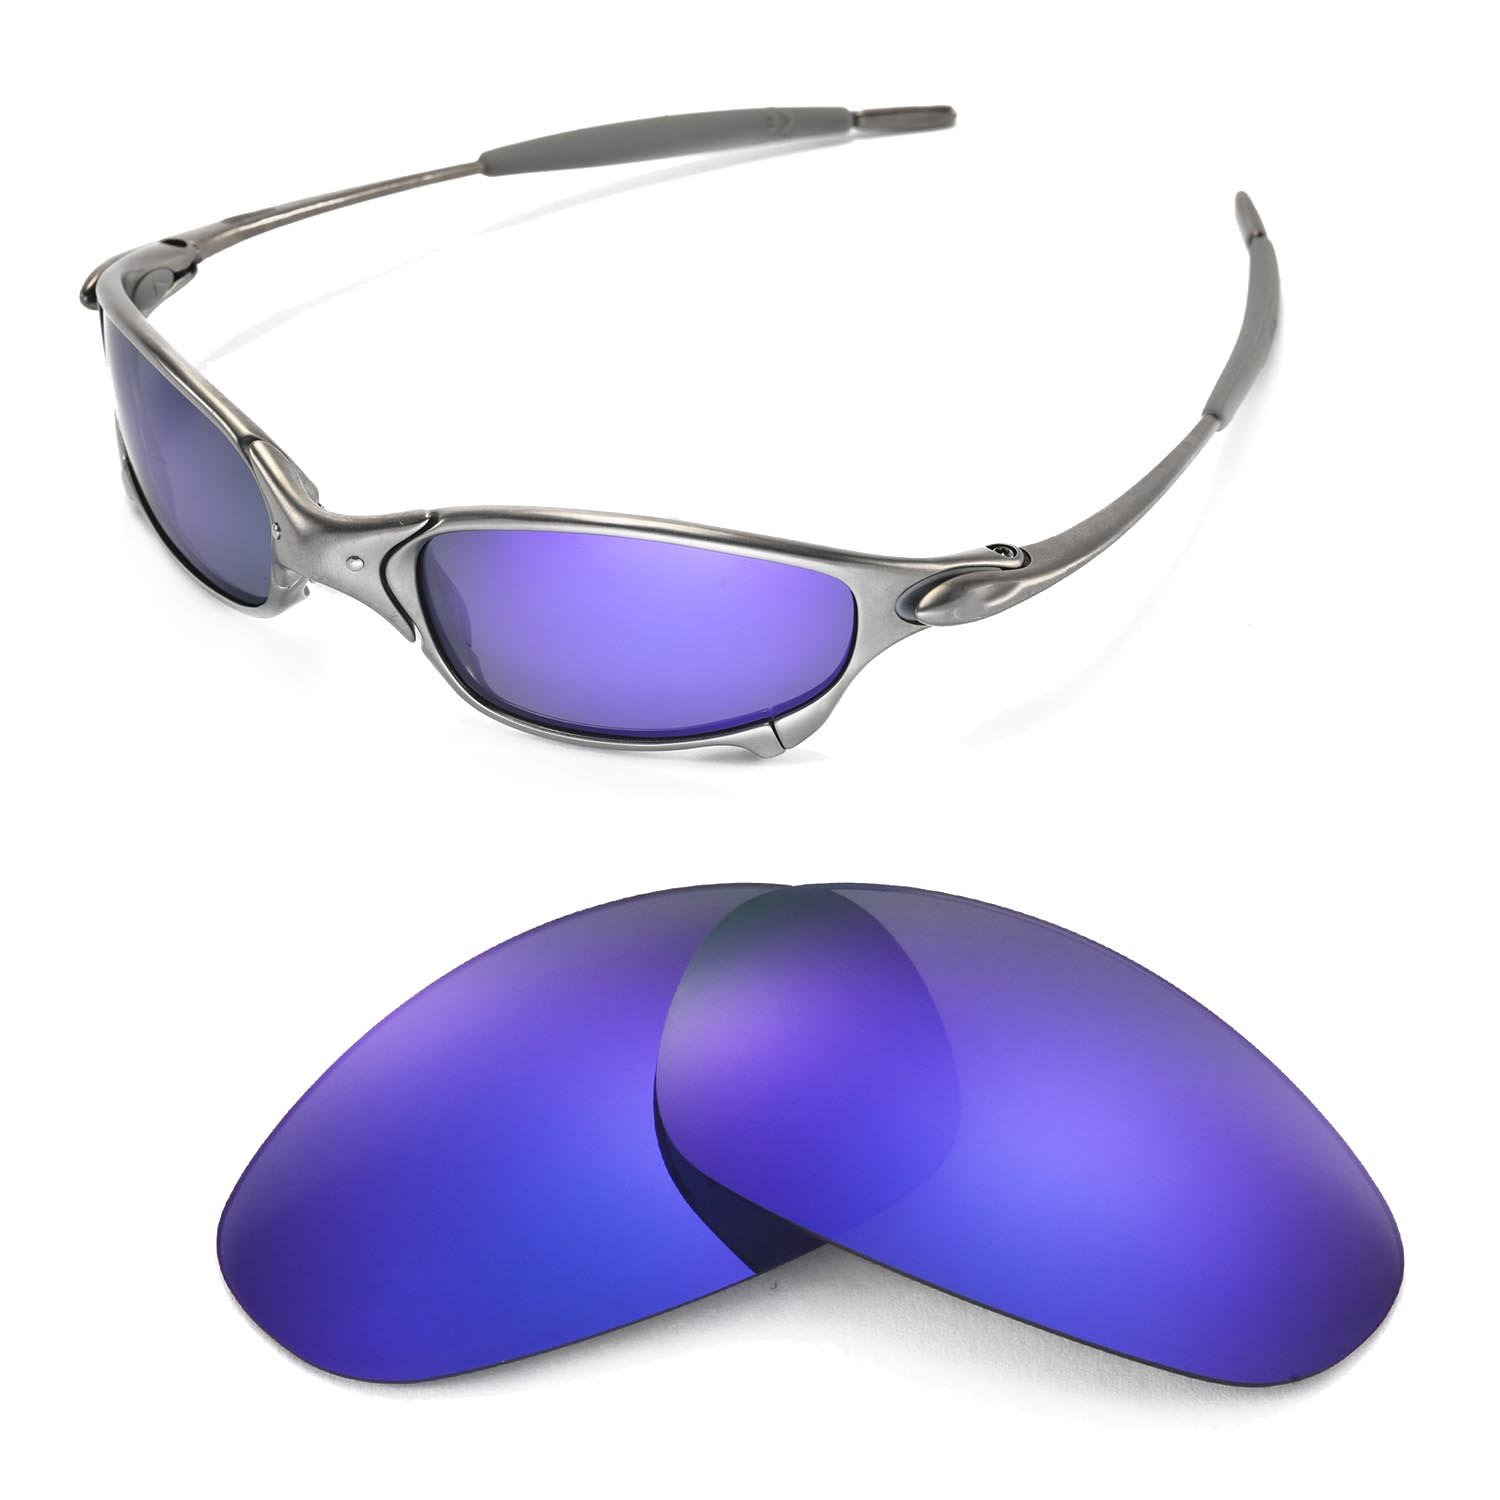 ffecf1bcc9 Galleon - Walleva Replacement Lenses For Oakley Juliet Sunglasses - Multiple  Options Available (Purple Coated - Polarized)